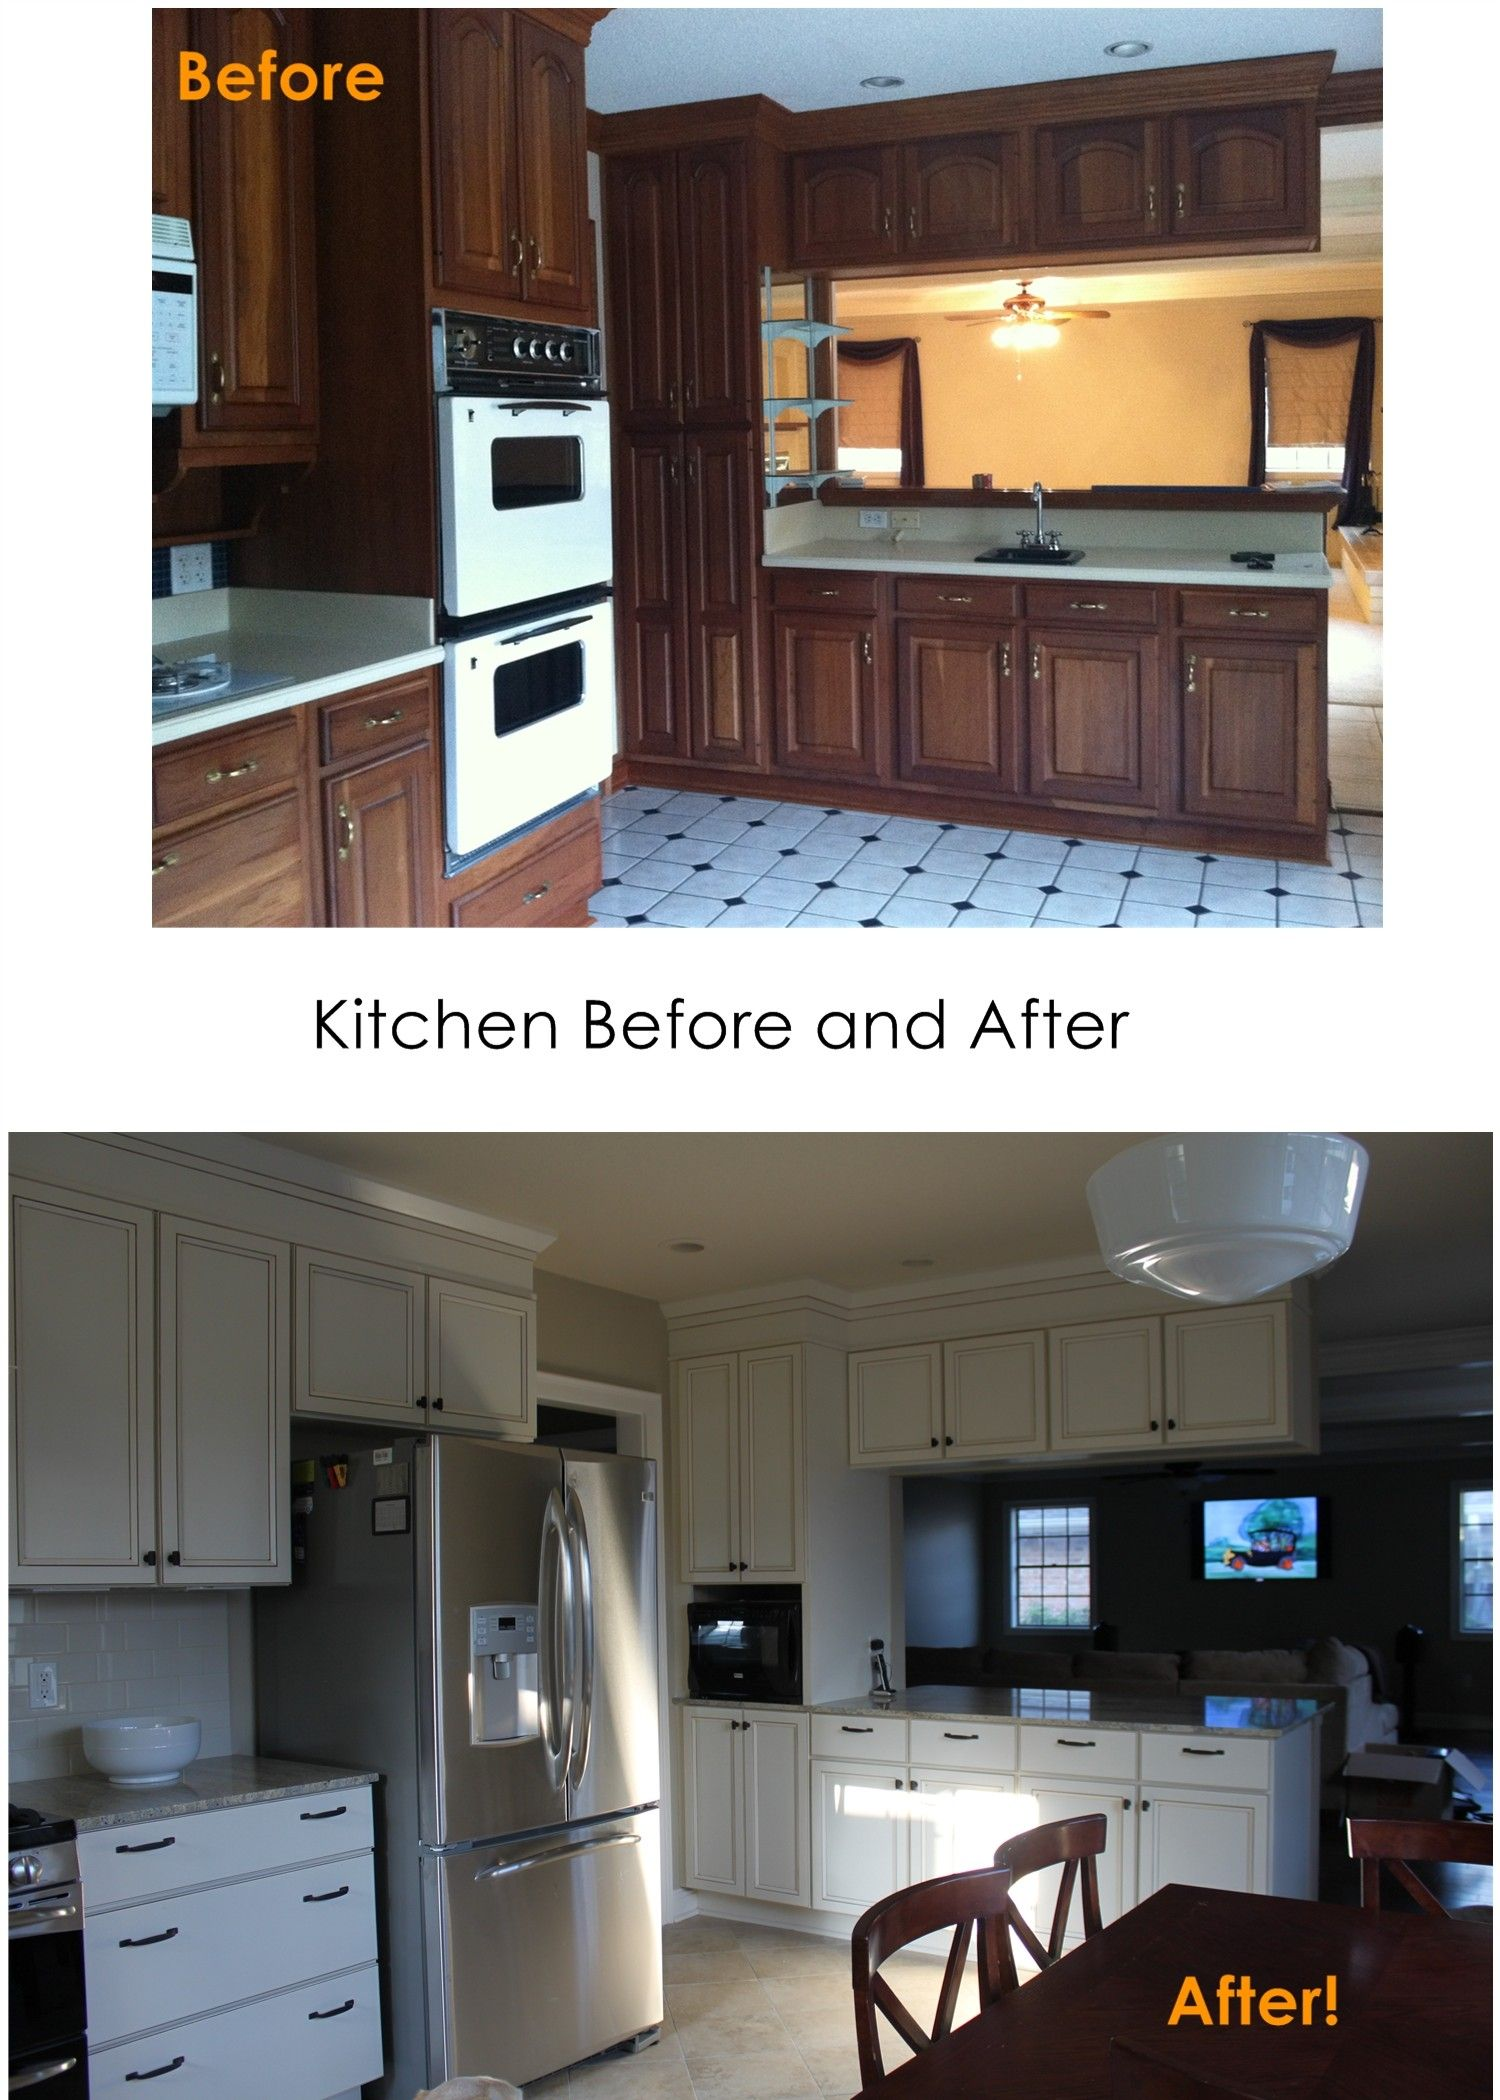 10x10 Kitchen Remodel: Kitchen Remodel - Before And After (With Images)